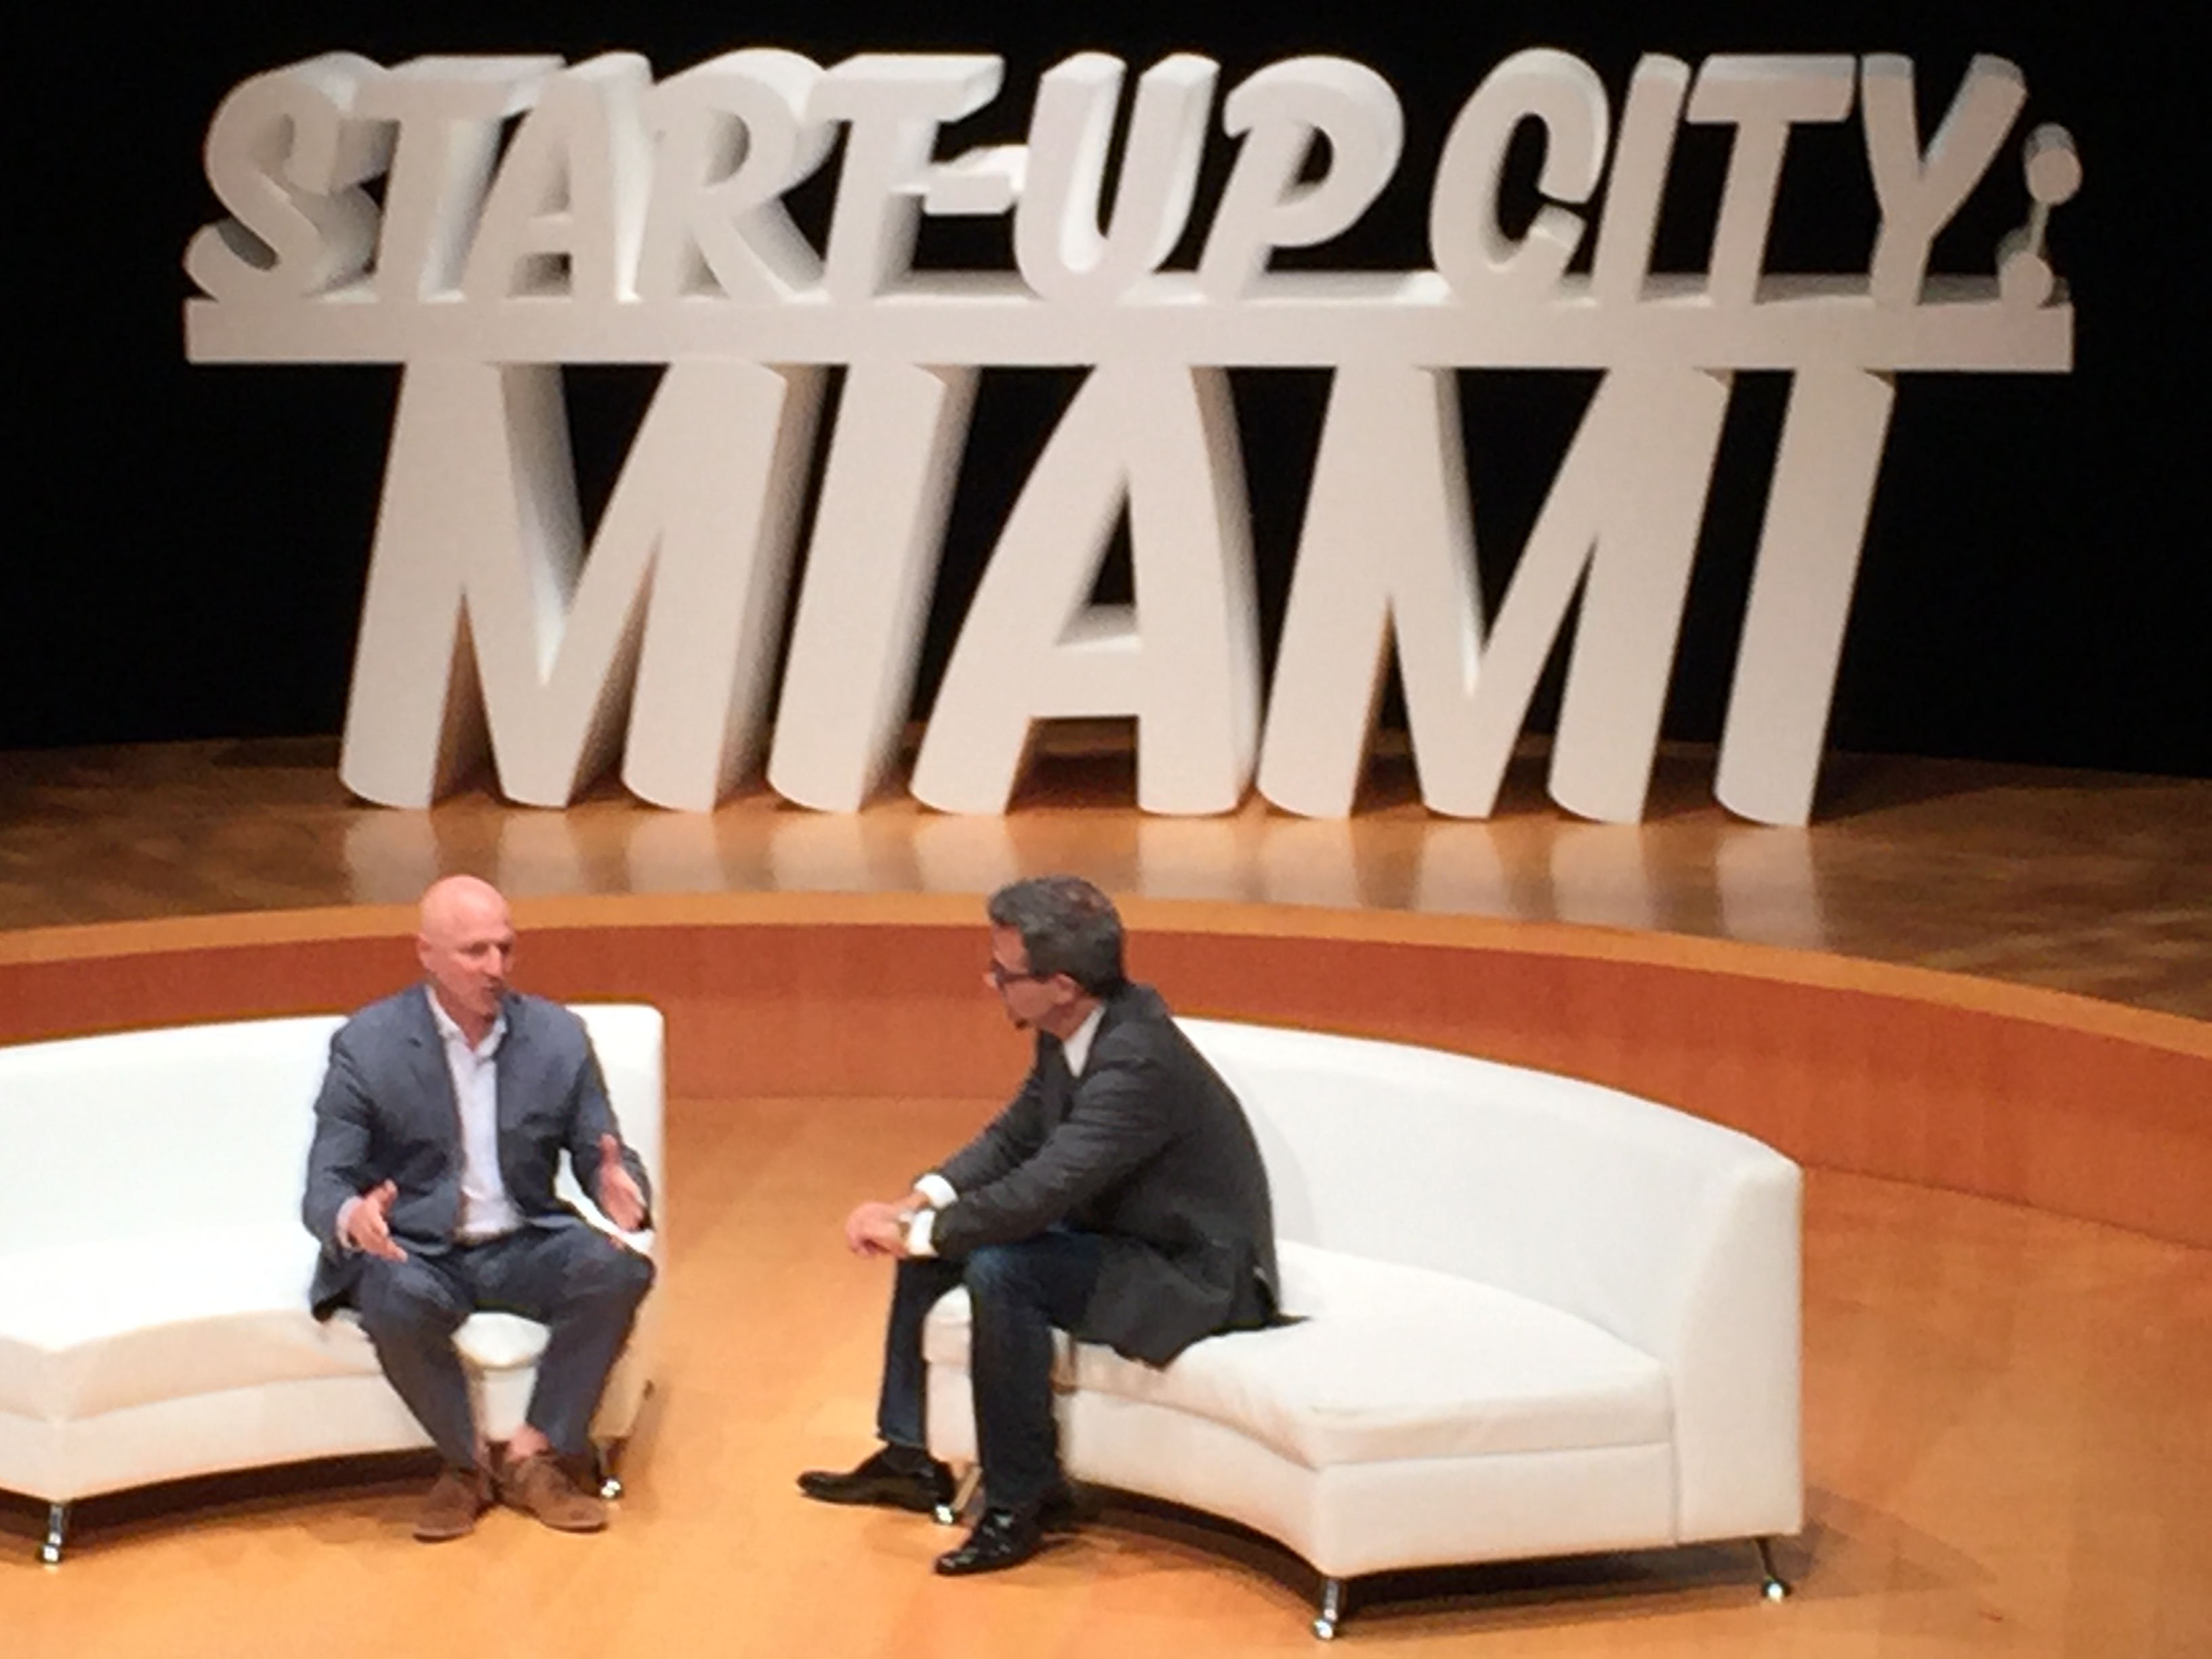 Start-Up City event looks at urban startups, creative energy